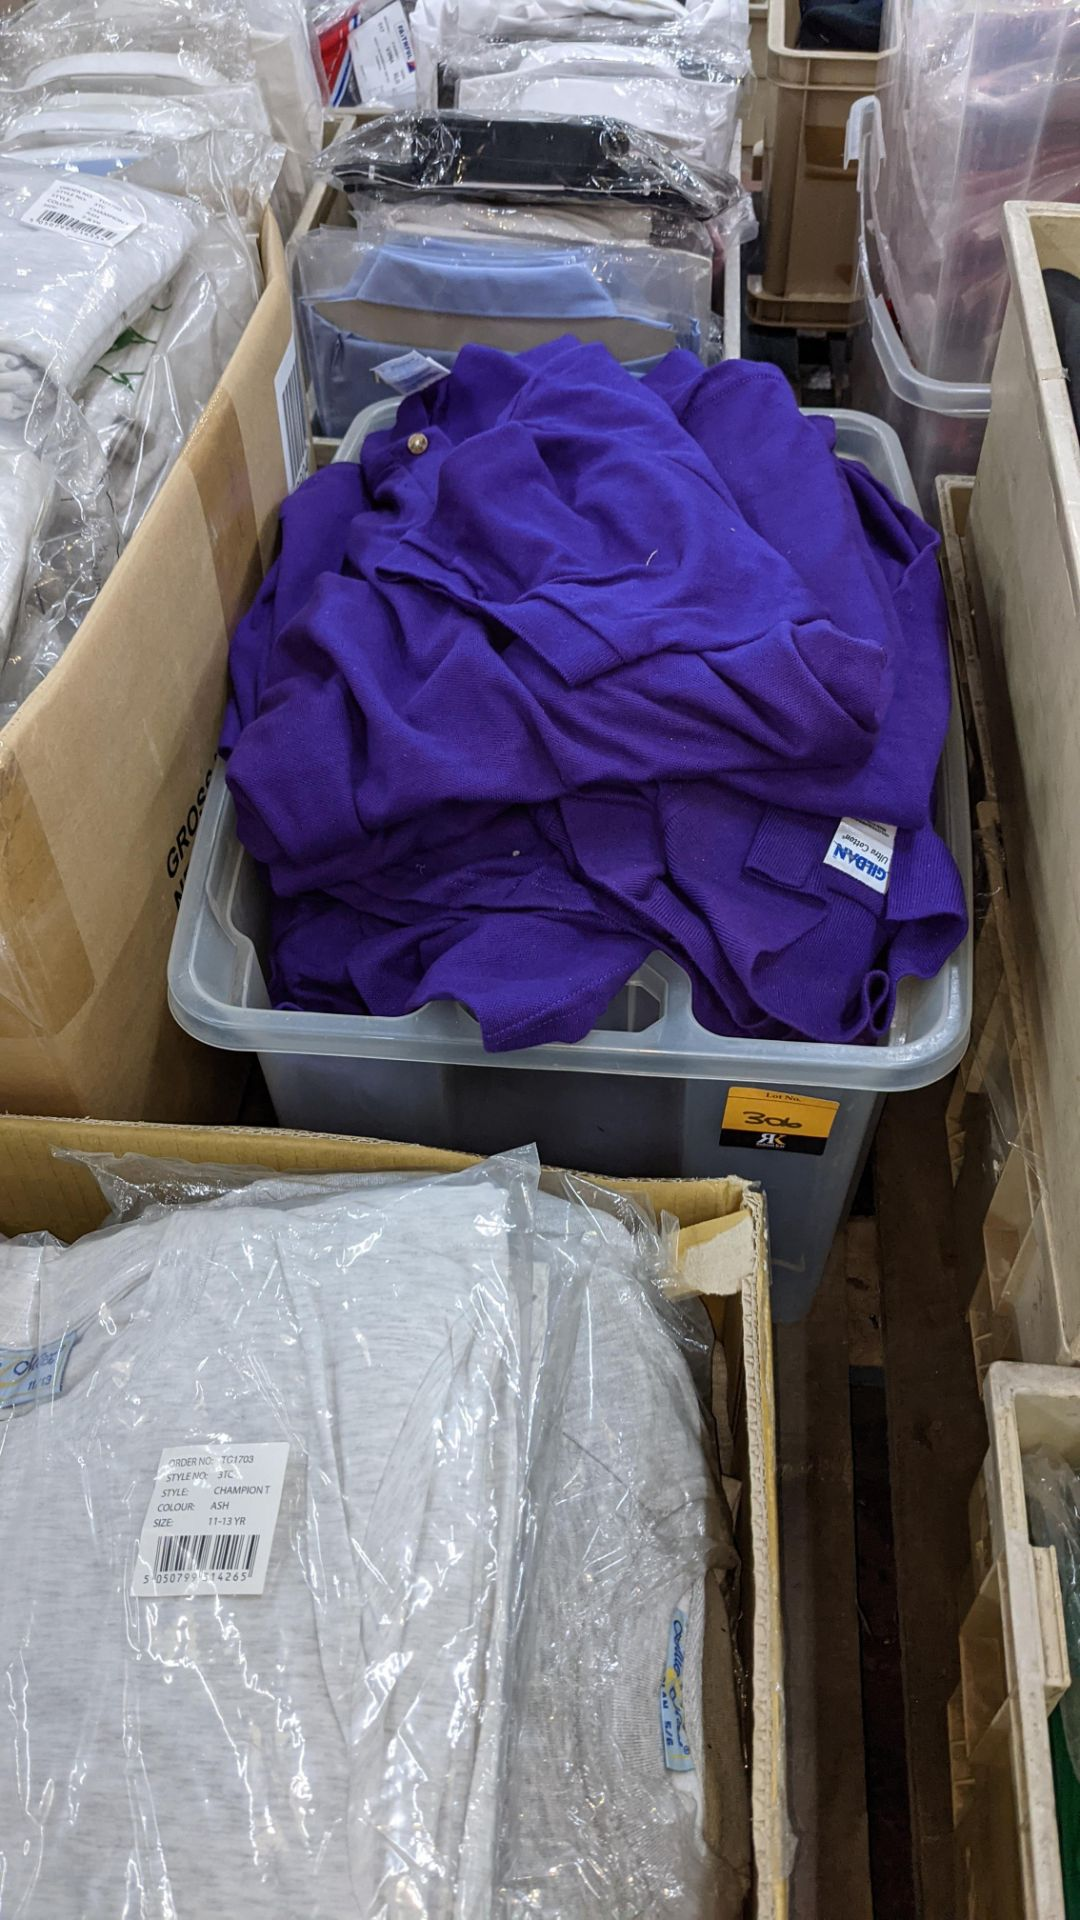 Quantity of Gildan purple polo shirts - the contents of 1 crate. NB crate excluded